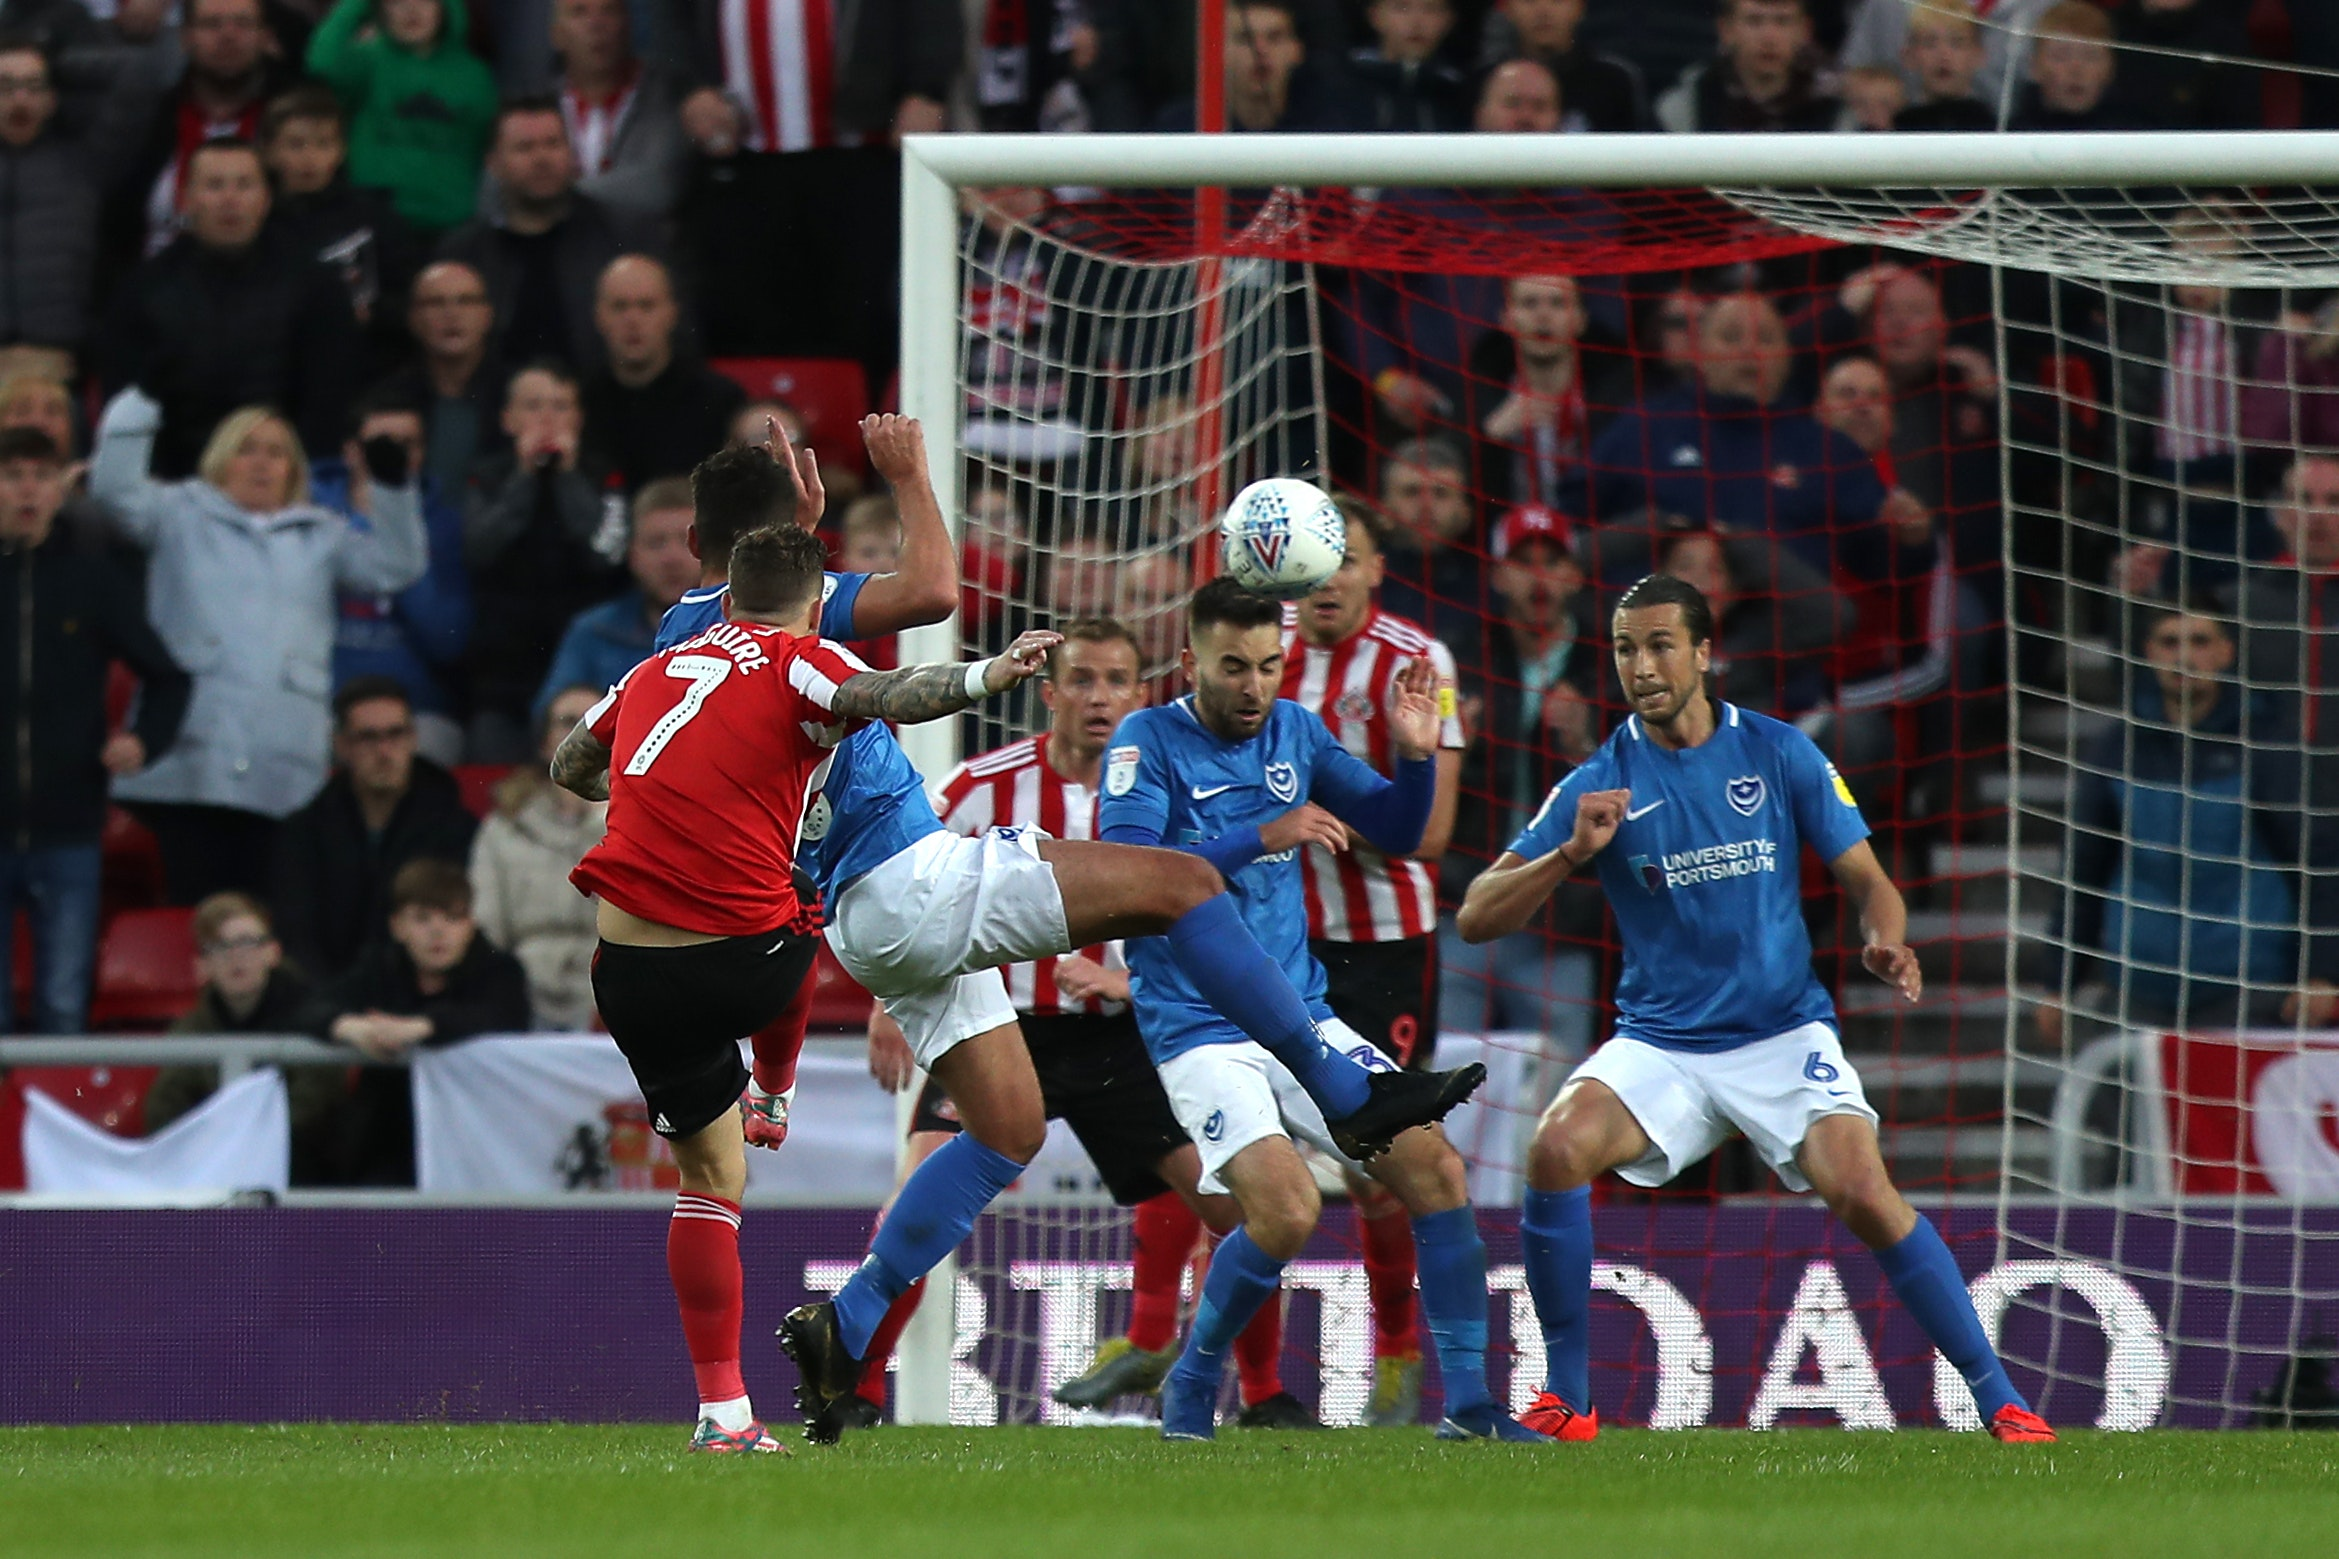 Chris Maguire (left) volleys Sunderland into a first leg lead over play-off rivals Portsmouth